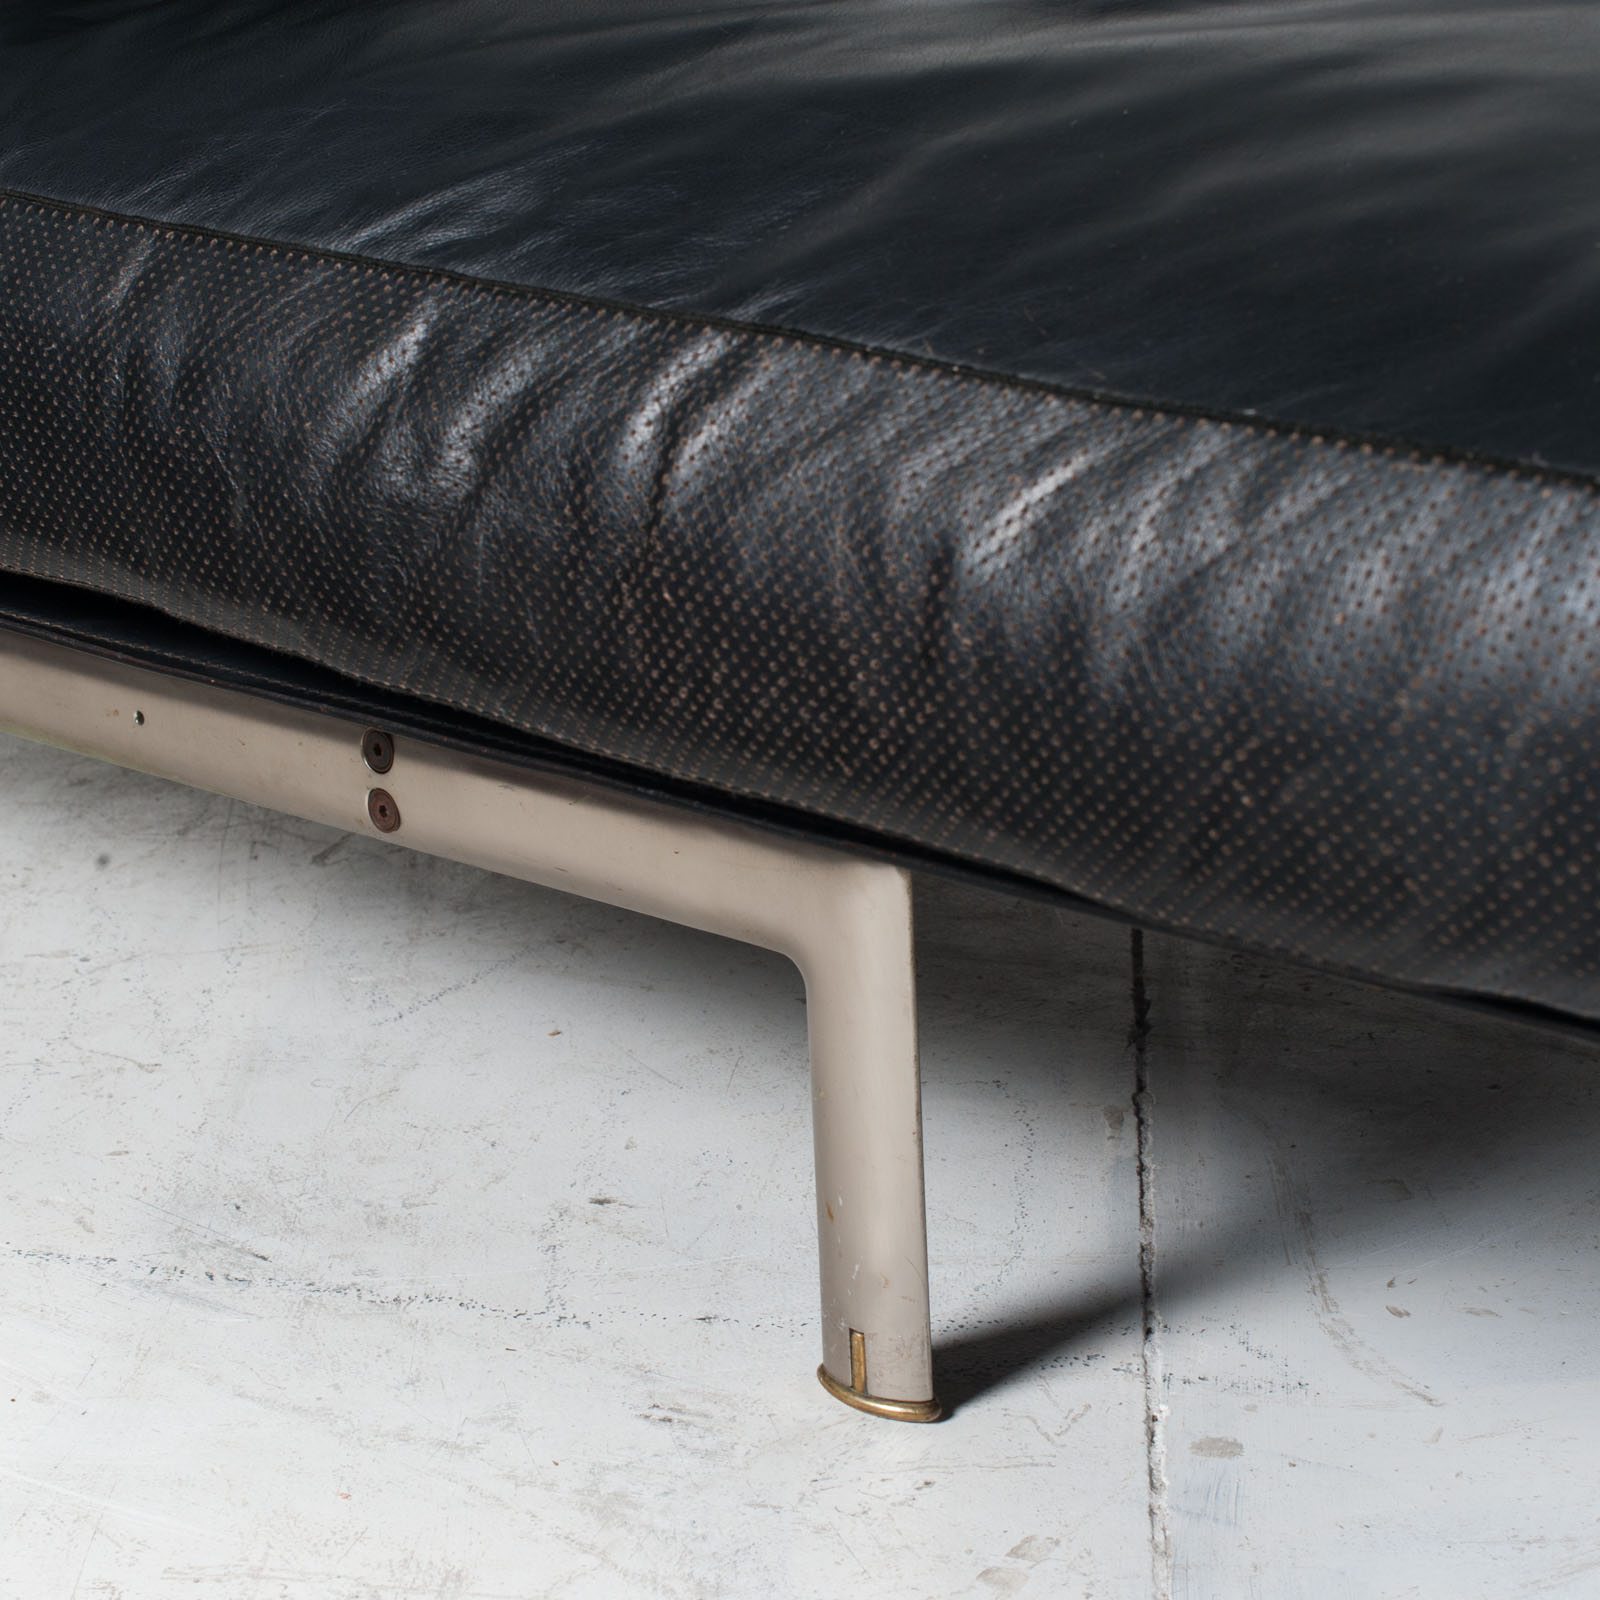 Model Diesis Chaise Lounge For B&b Italia By Antonio Citterio In Black Leather 1970s Italy 09